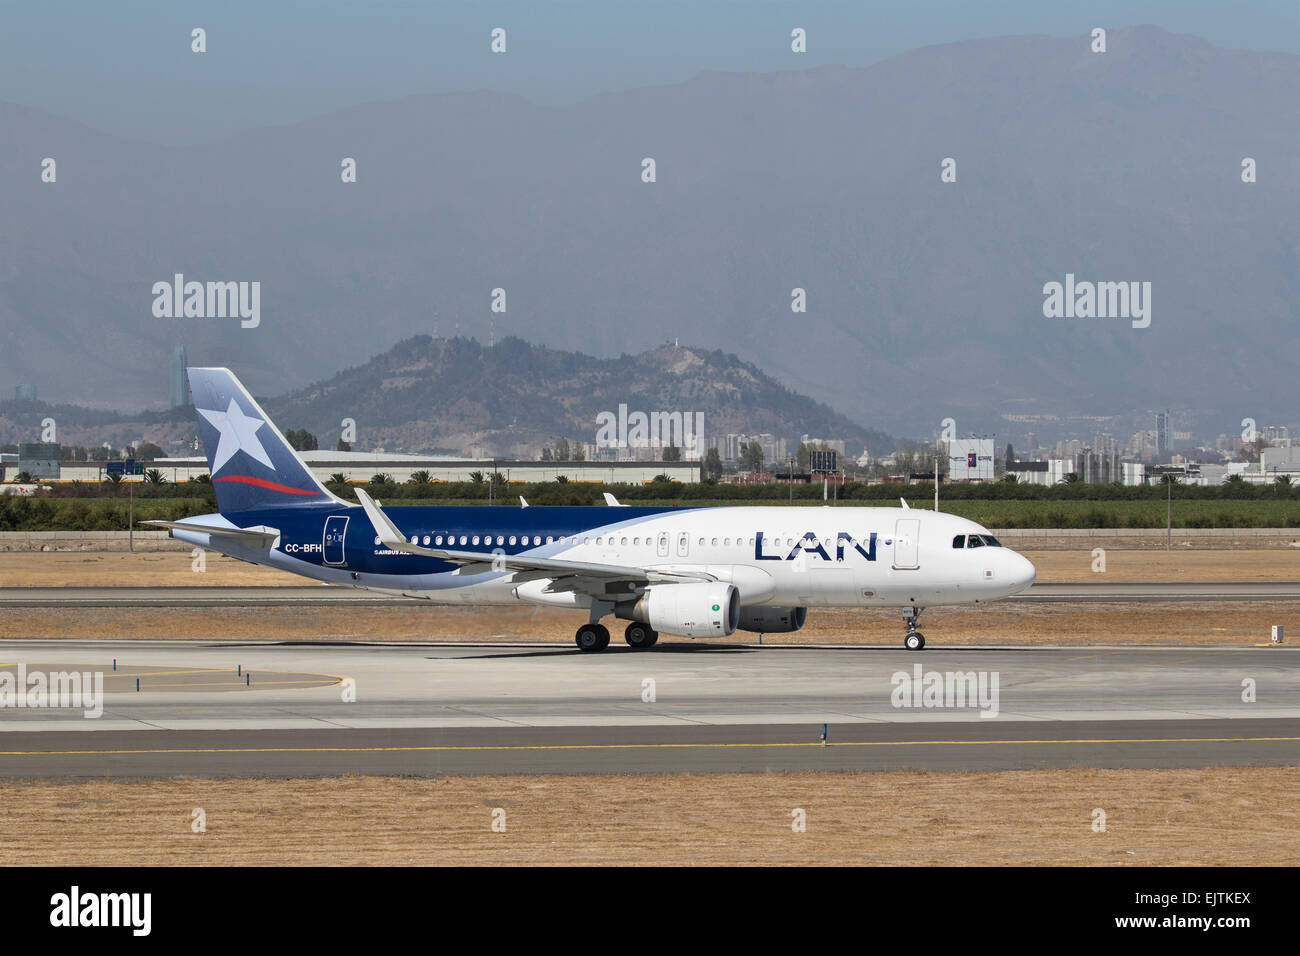 LAN Airlines Airbus A320-200 registered CC-BFH, at Santiago Airport - Stock Image